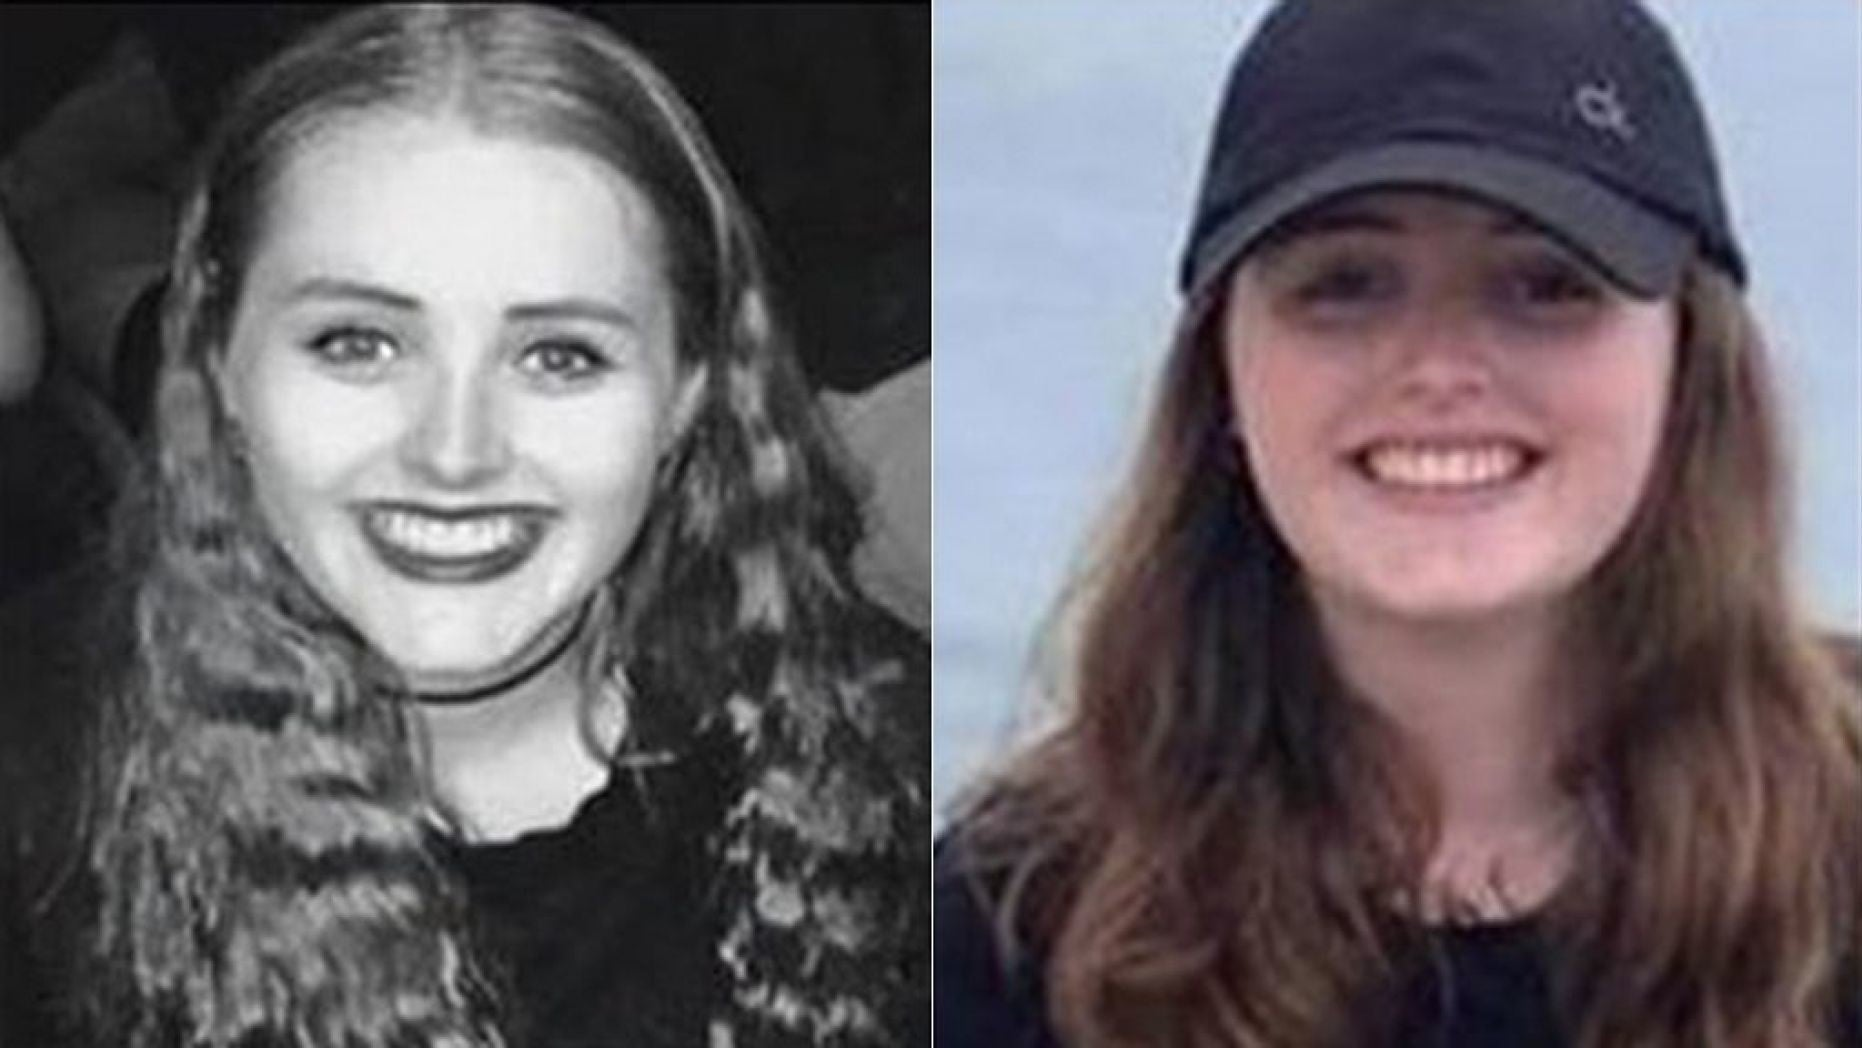 New Zealand police said Grace Millane was murdered by a man will be charged with murder